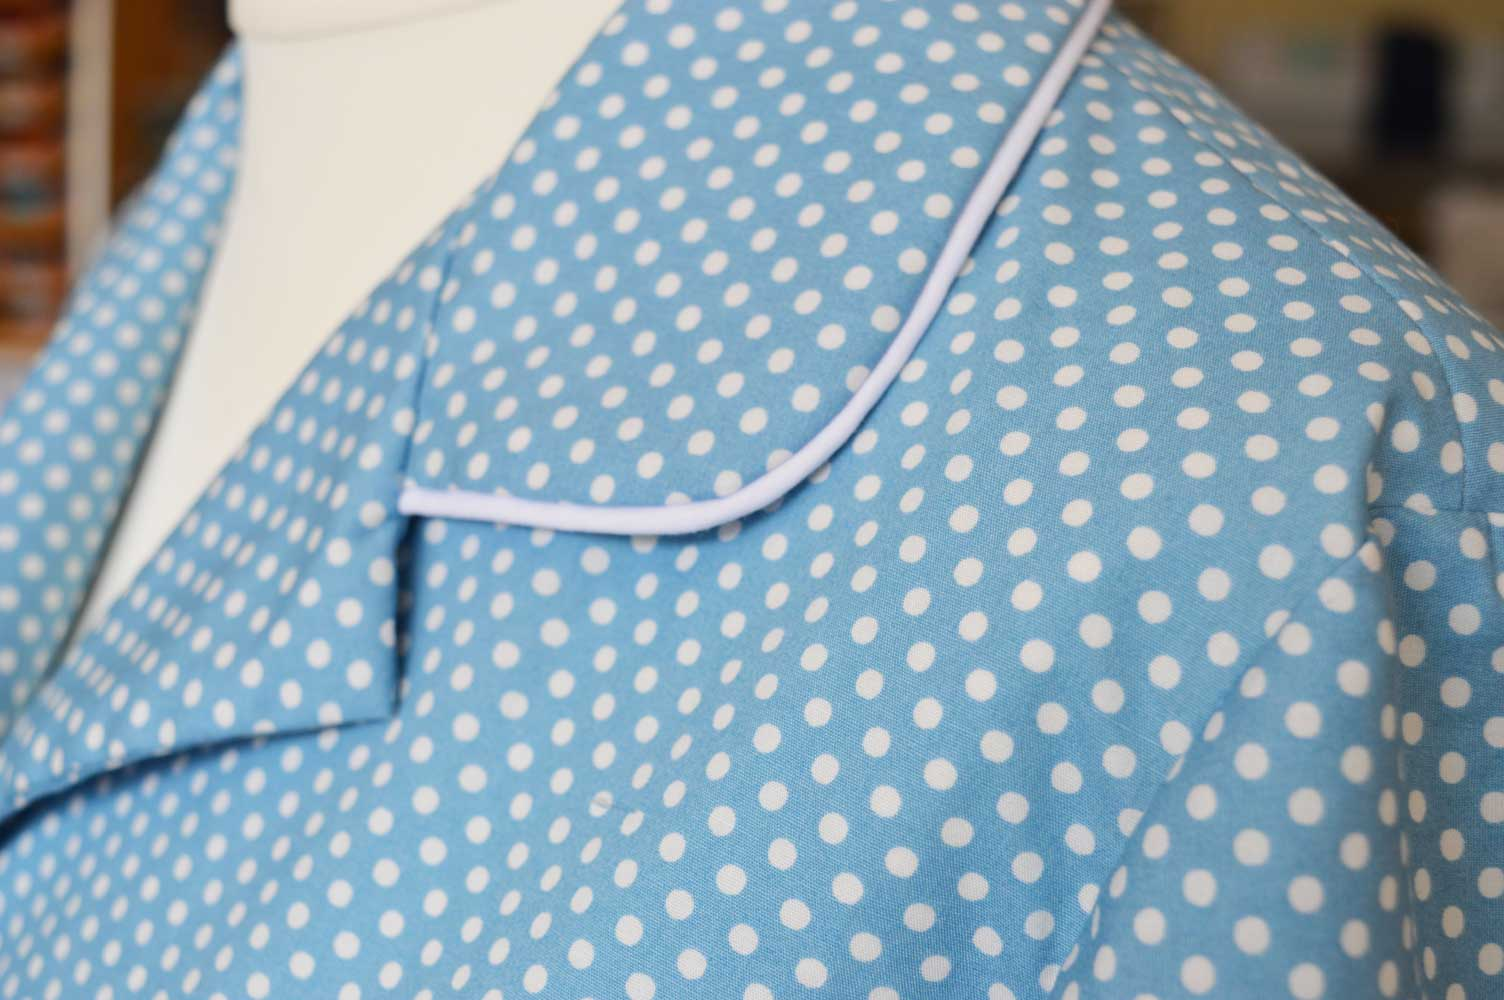 McCalls 6659 Spotty Pyjama Set For Spring   collar piping detail   Holm Sown